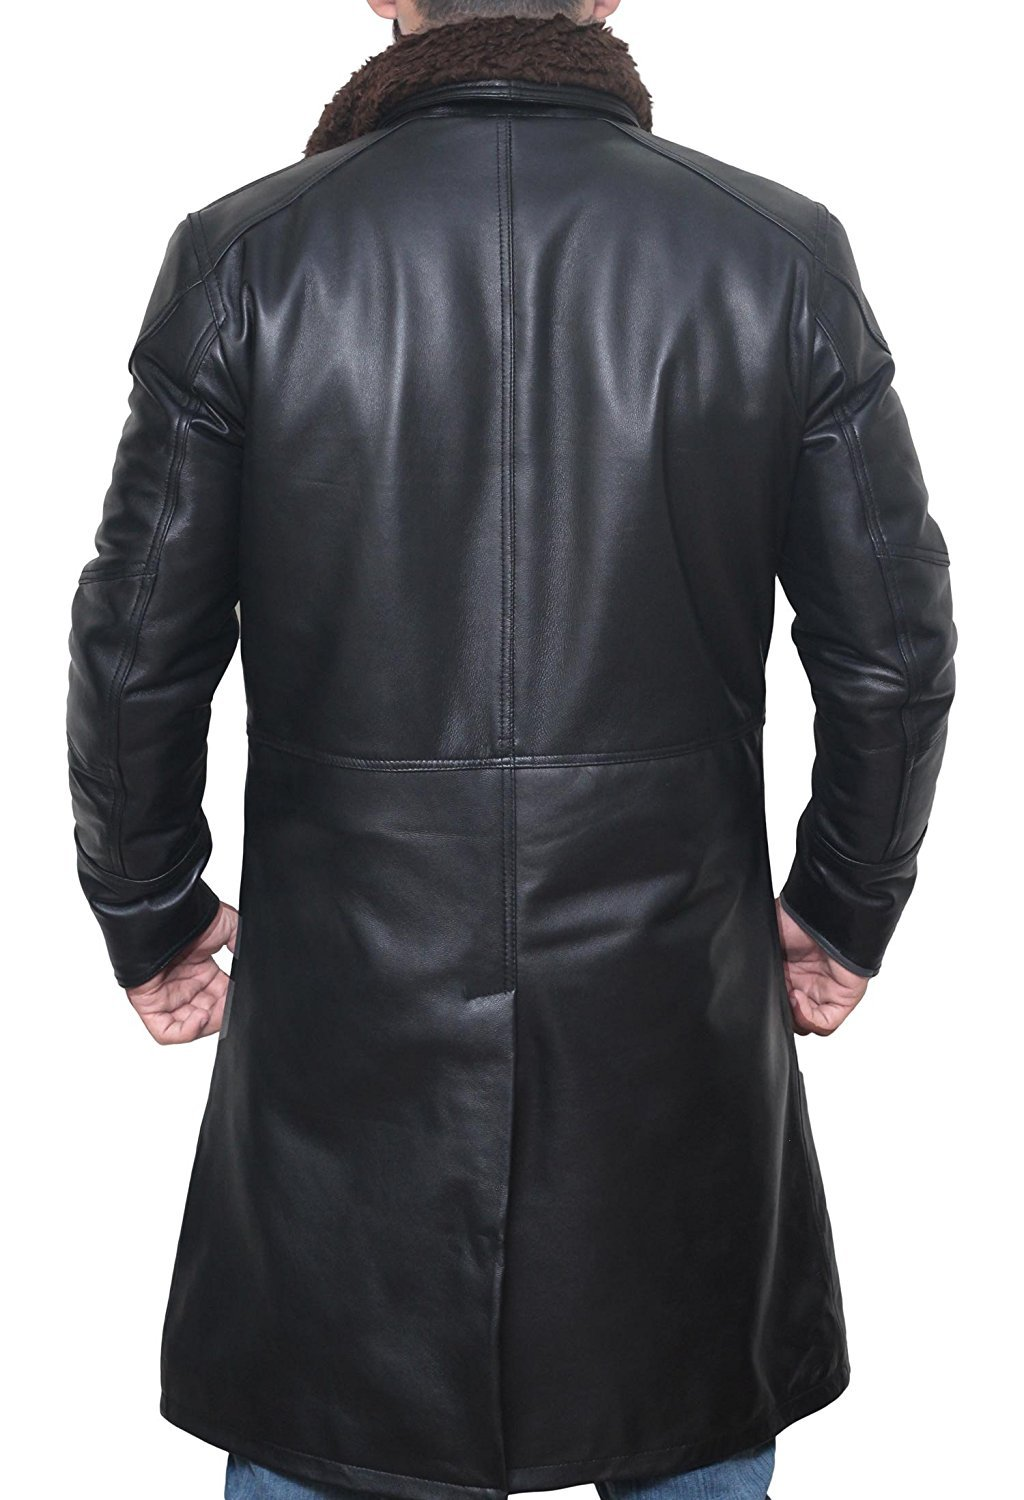 Decrum BladeRunner Black Long Trench Leather Mens Shearling Coat | PU Black, M by Decrum (Image #3)